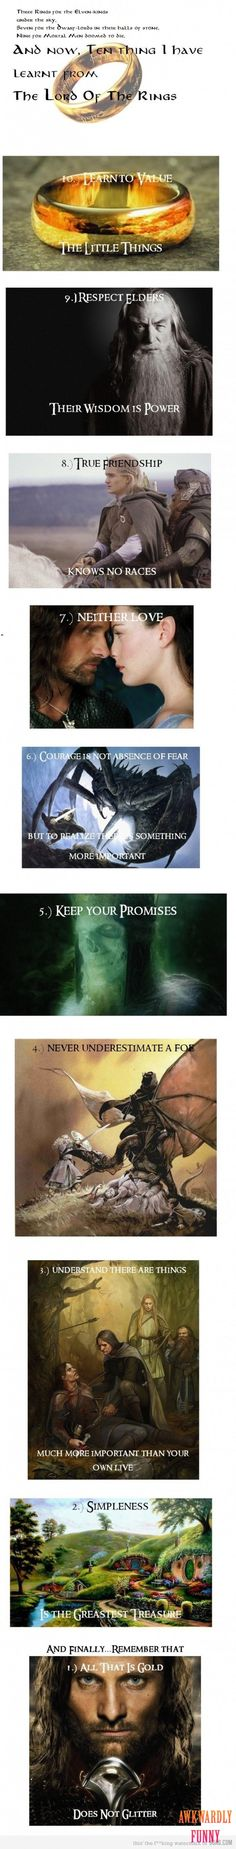 10 lessons from The Lord of the Rings